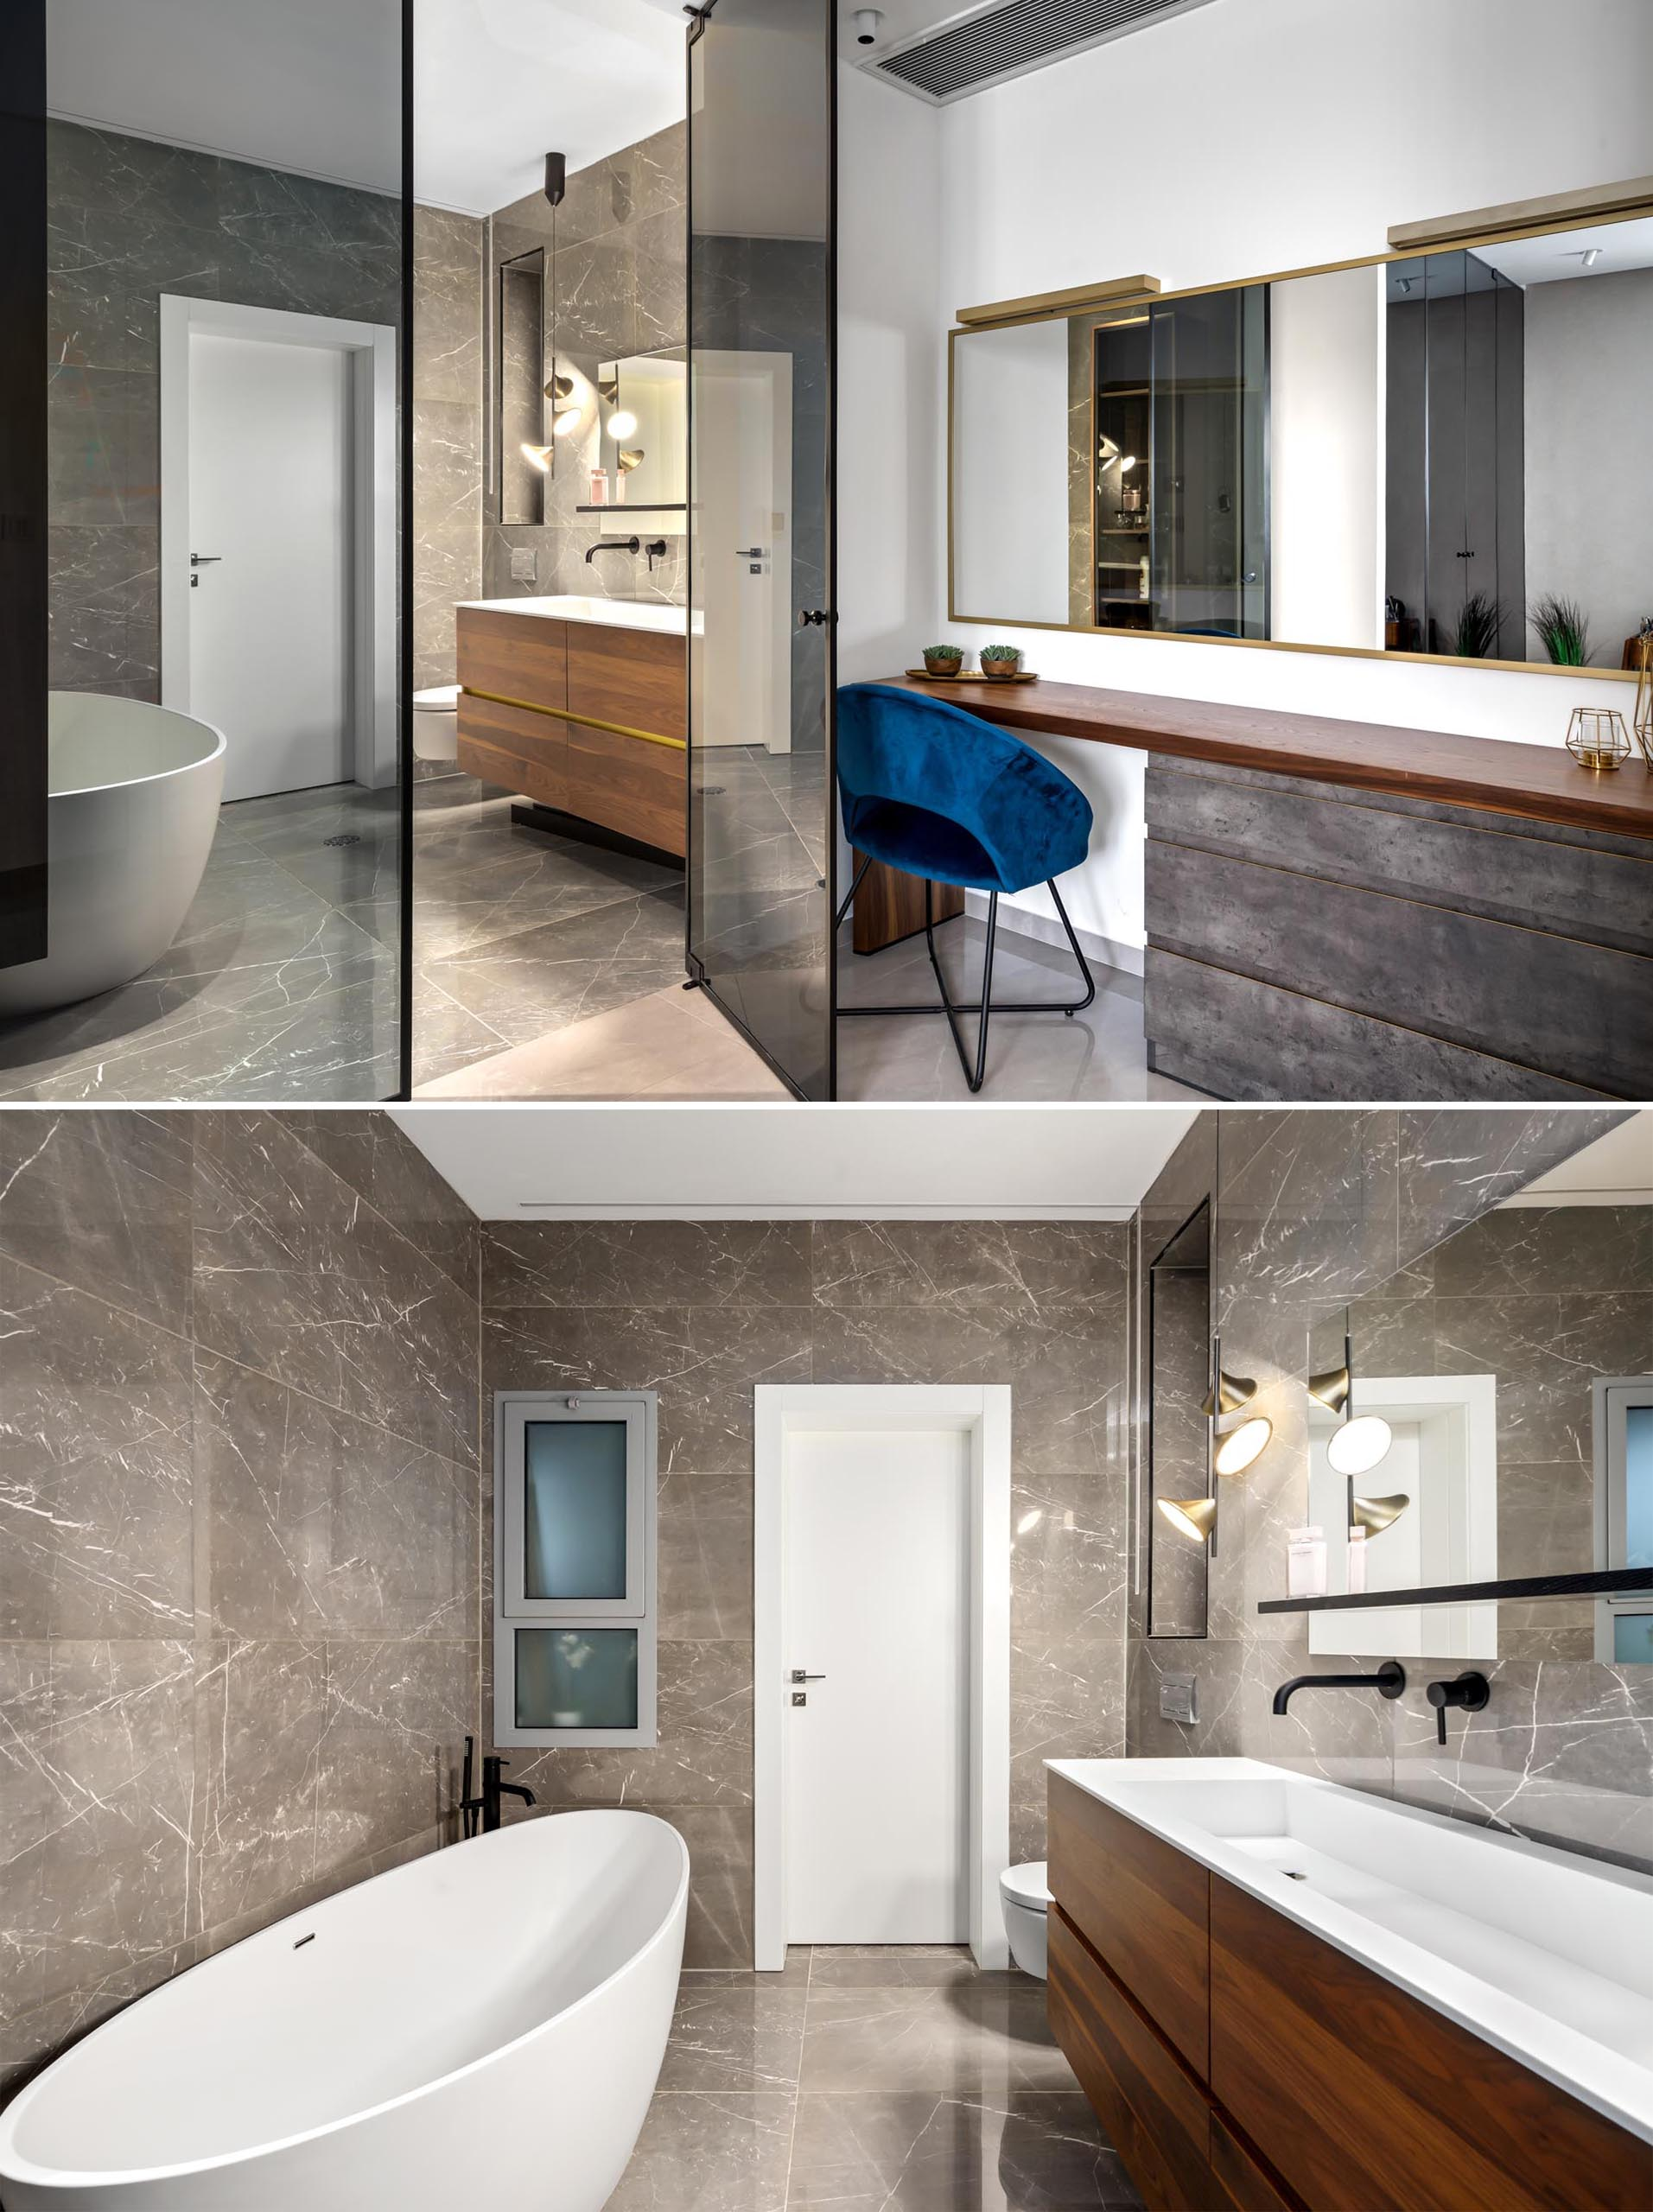 A bedroom with a make-up vanity area and an en-suite bathroom with a freestanding bathtub.